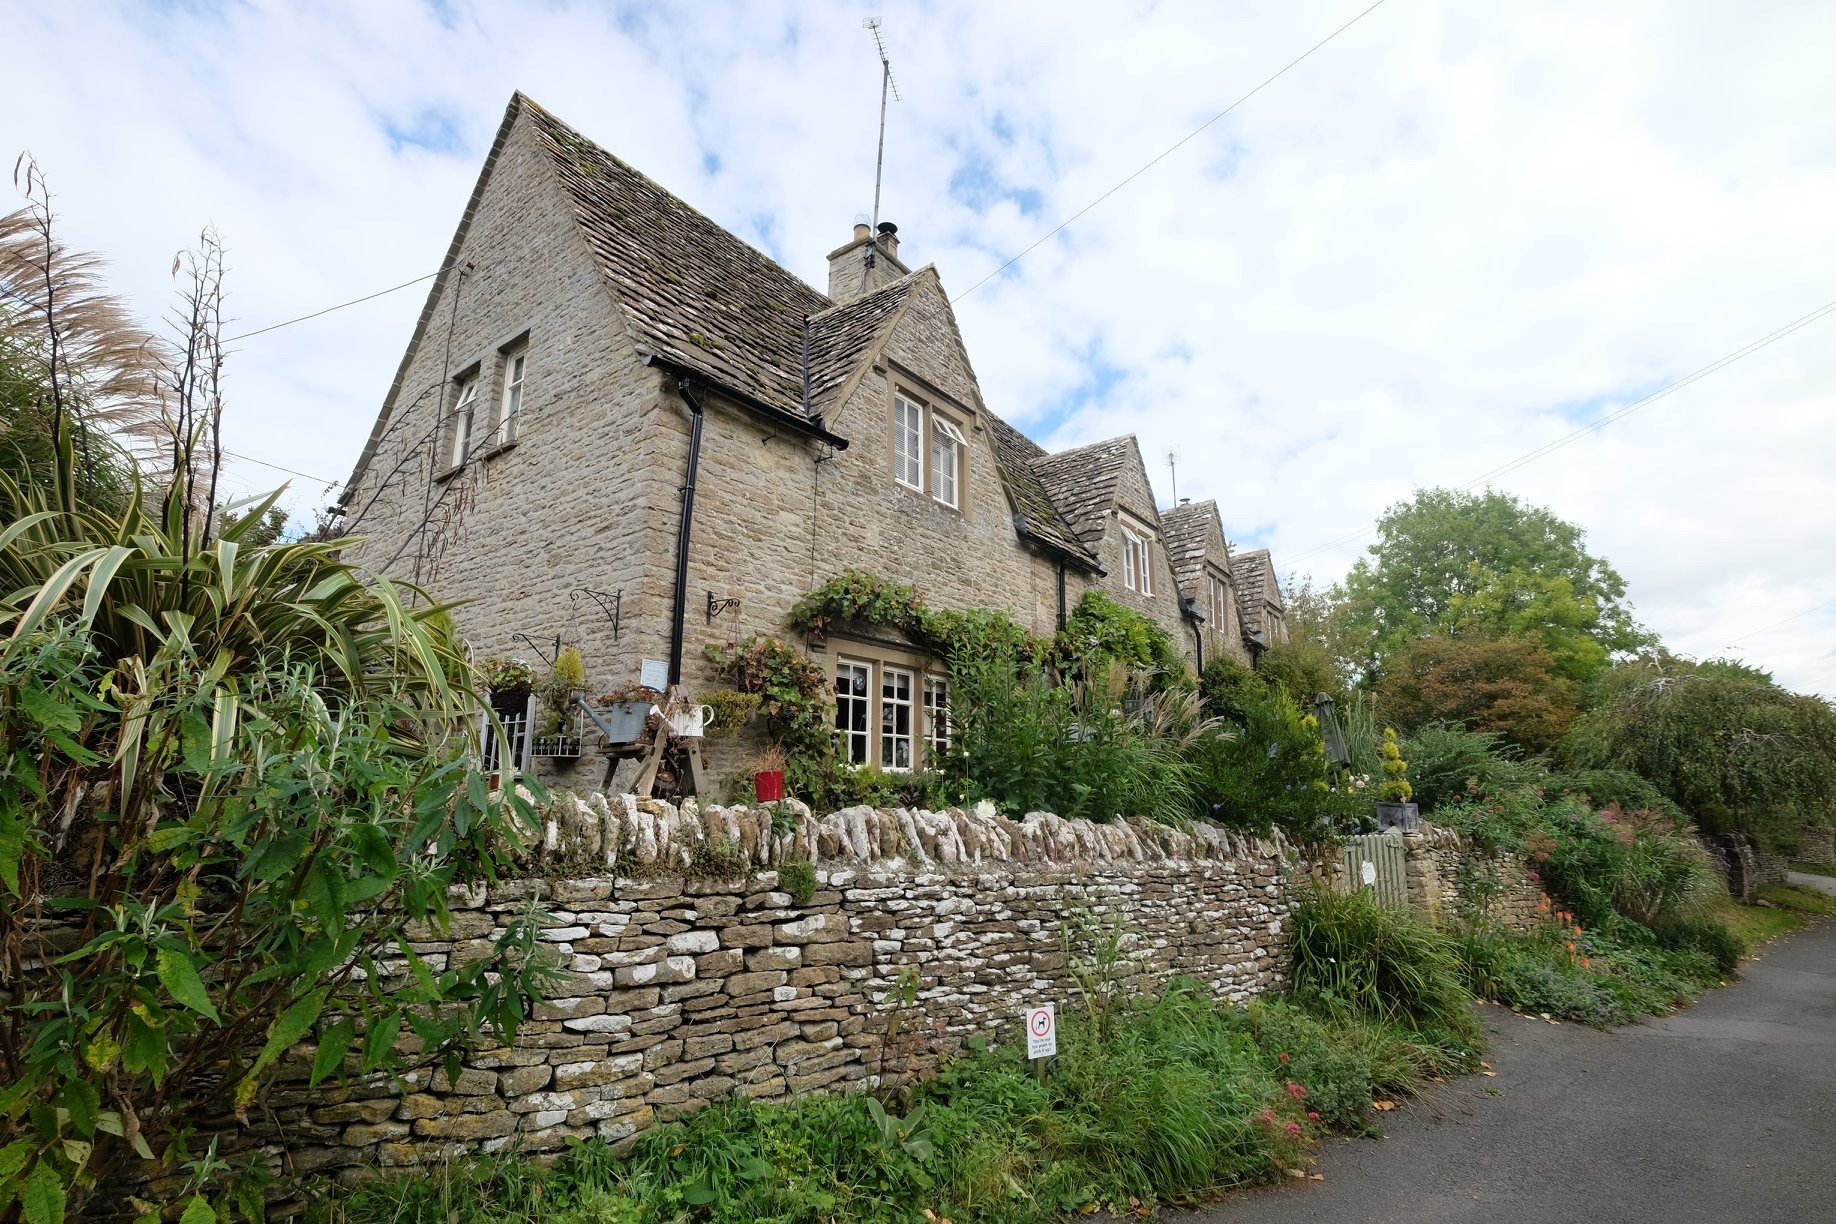 28 and 29 A Grade II Listed Building in Eastleach Martin, Gloucestershire